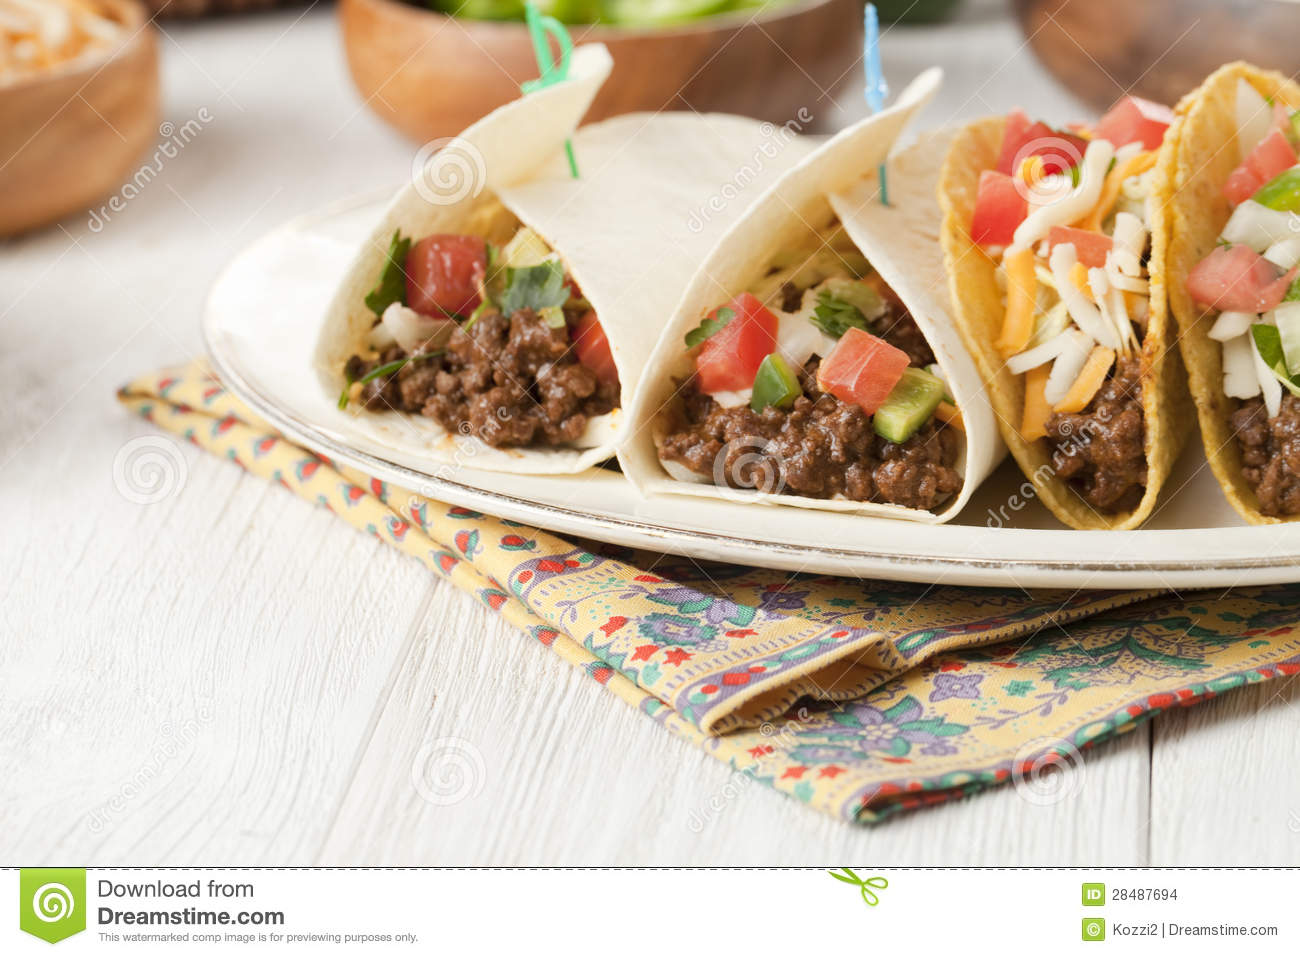 Delicious Mexican Tacos Stock Images - Image: 28487694